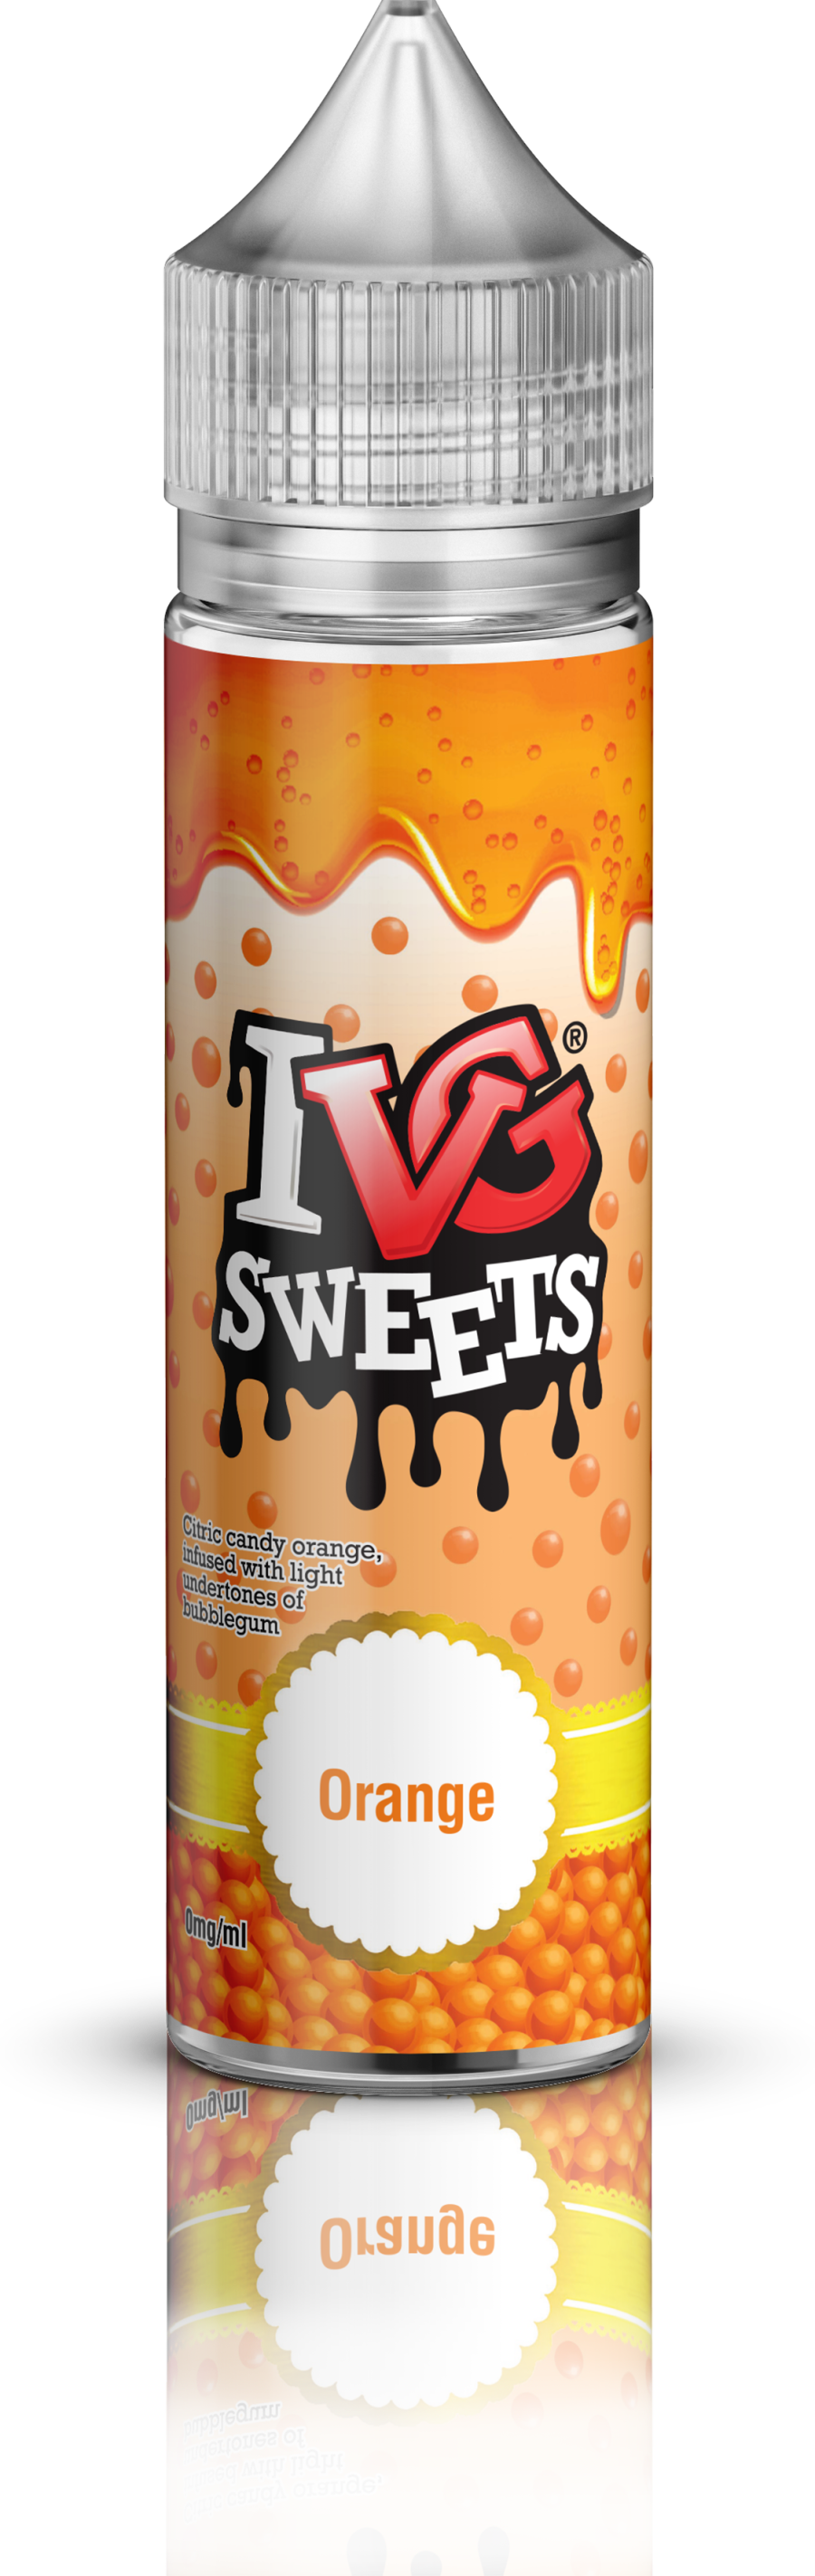 Orange By IVG Sweets 50ml 0mg